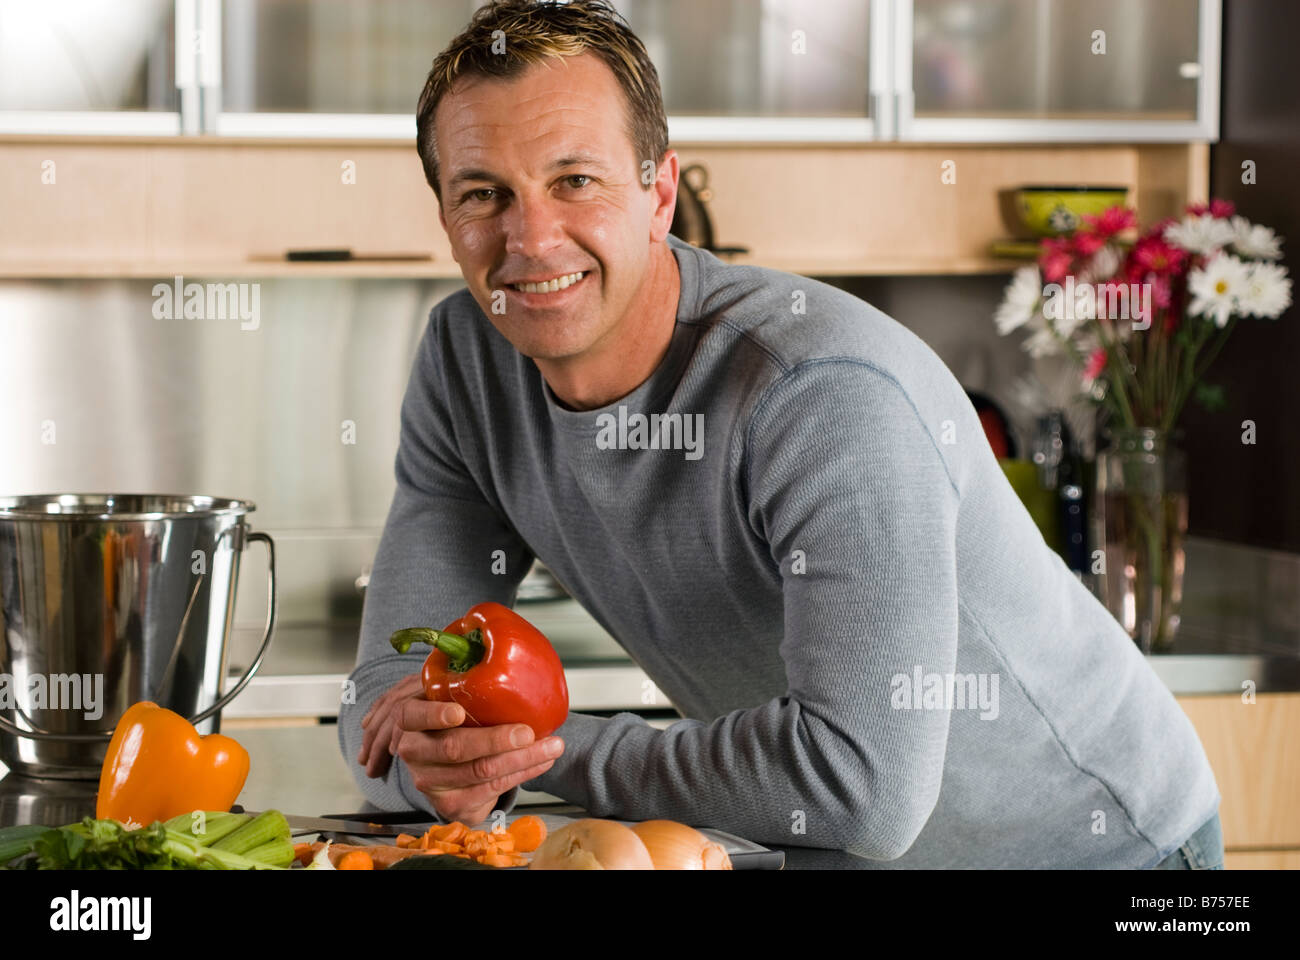 man with vegetables in kitchen with metal kitchen compost pail for collecting kitchen scraps winnipeg canada